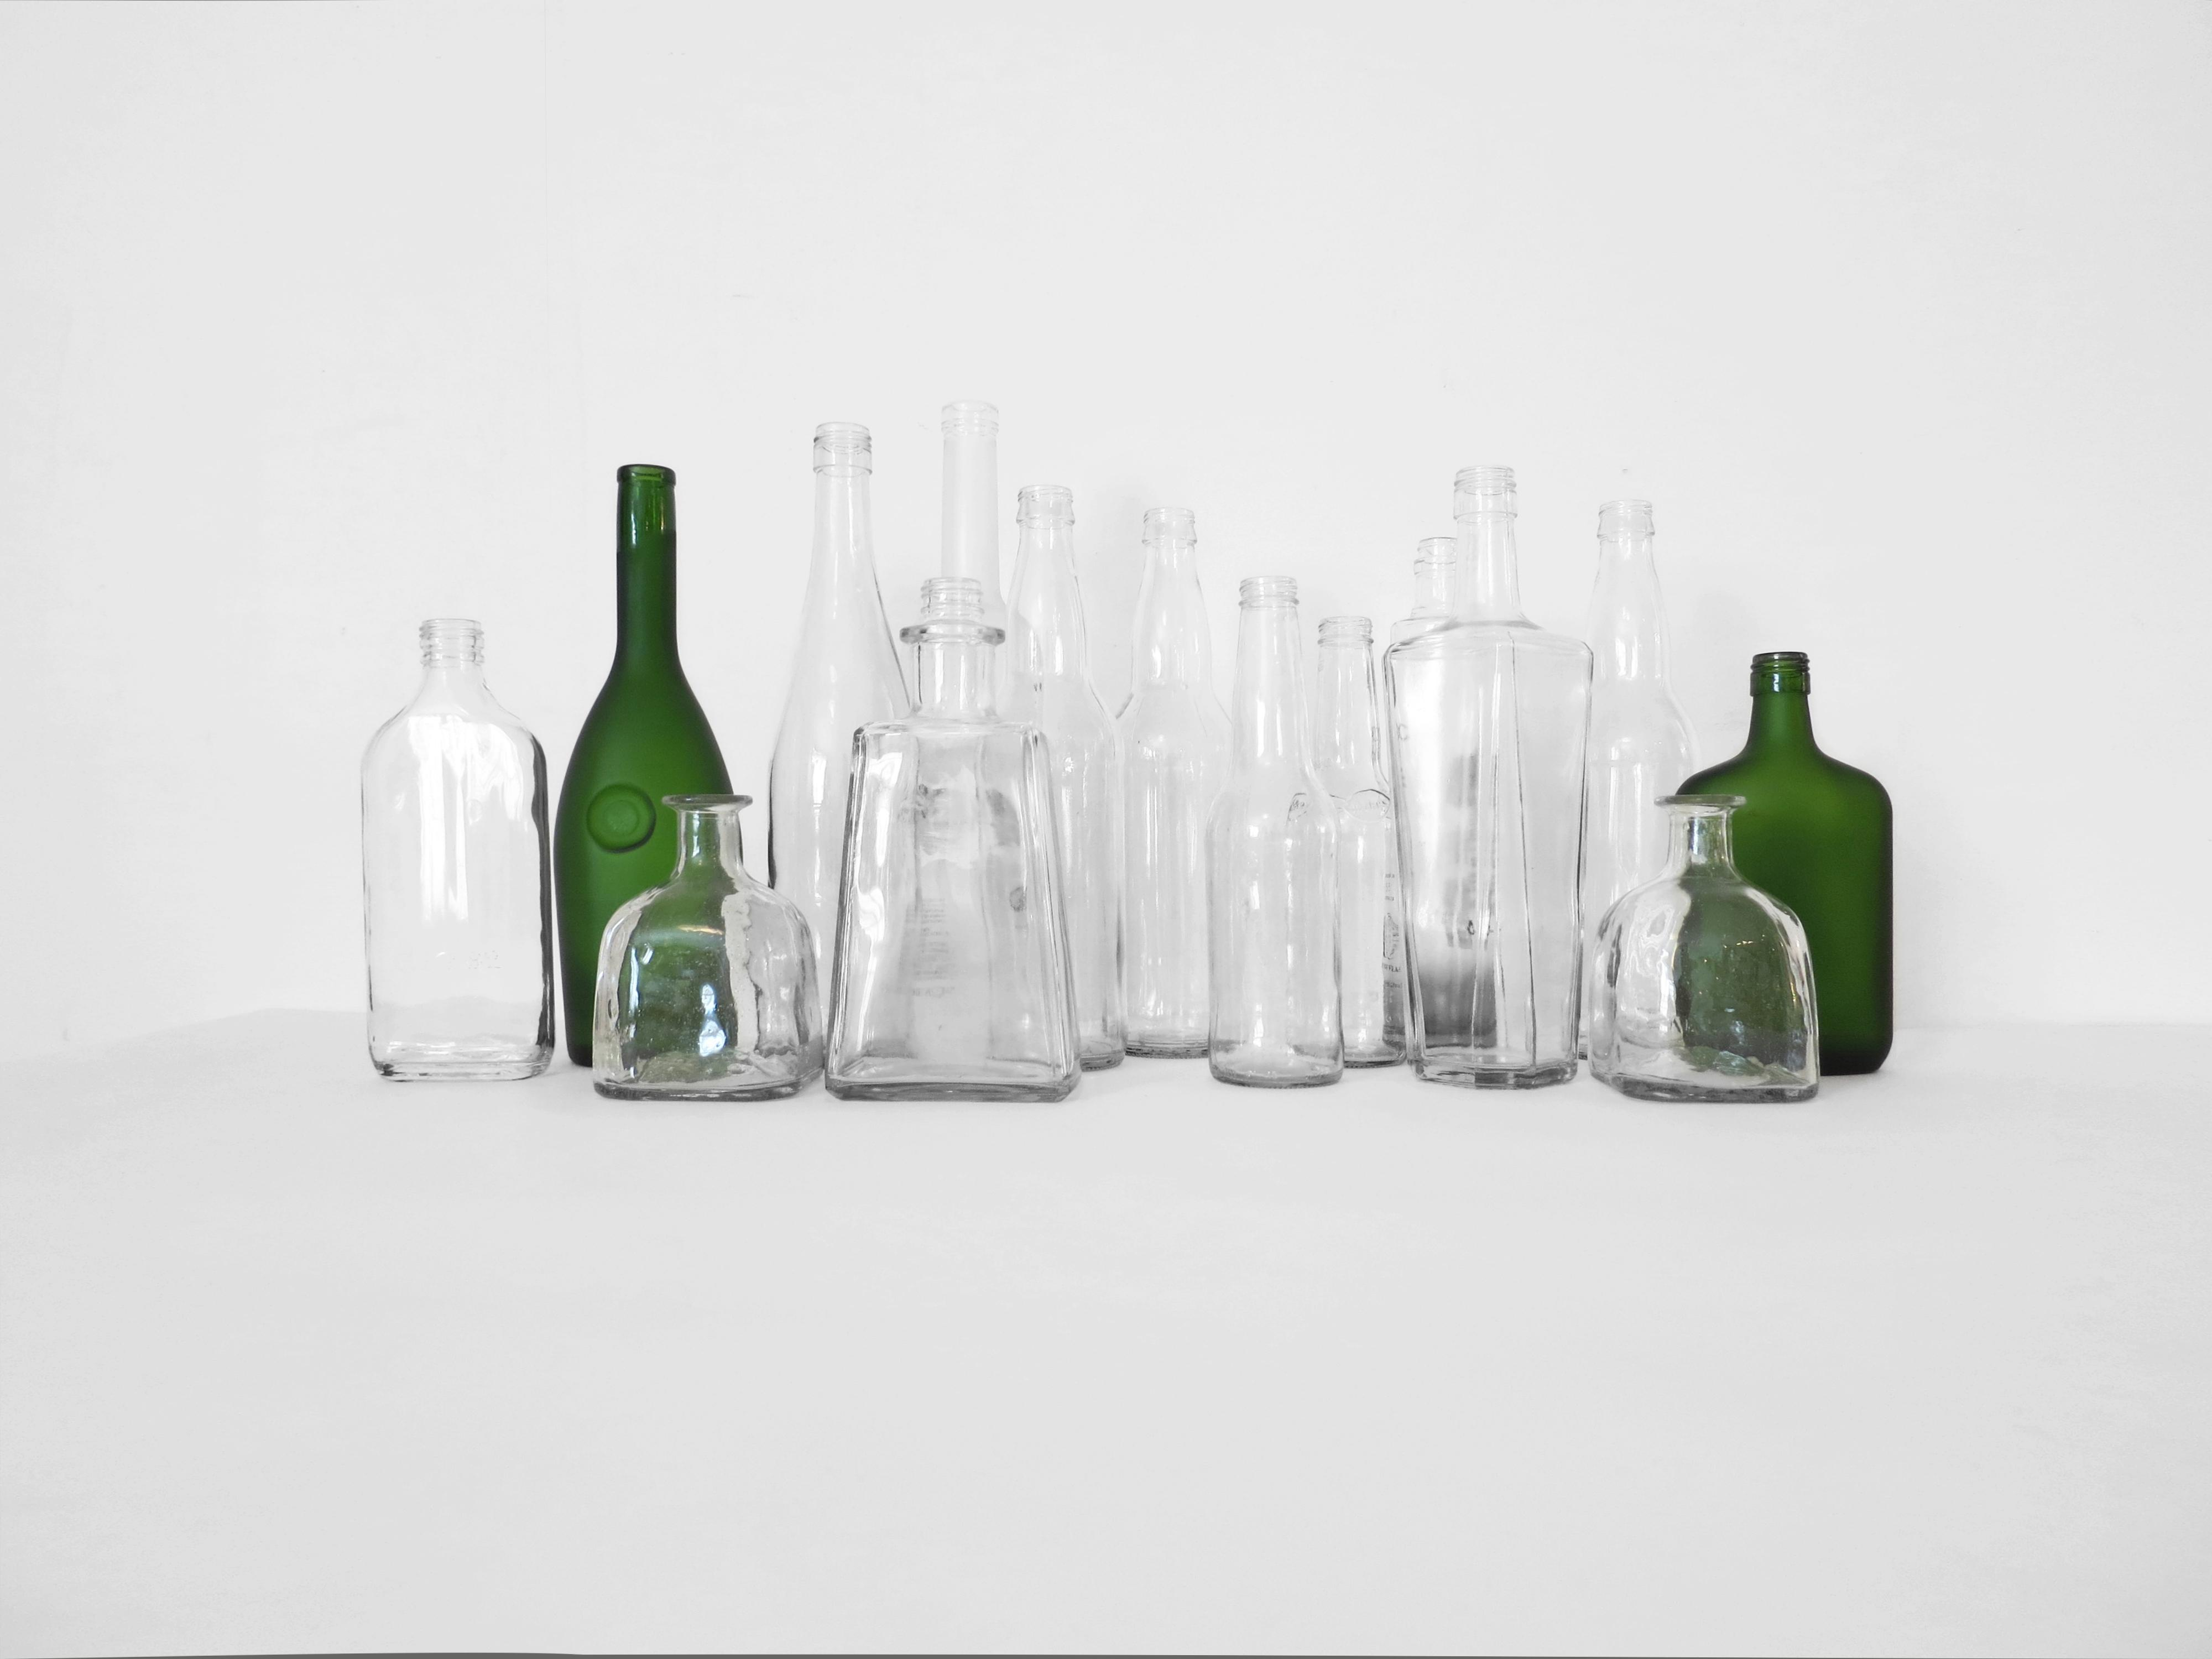 Thirteen colorless glass bottles and two green bottles, each a different shape and size and without a label, stand in a cluster in front of a white wall.